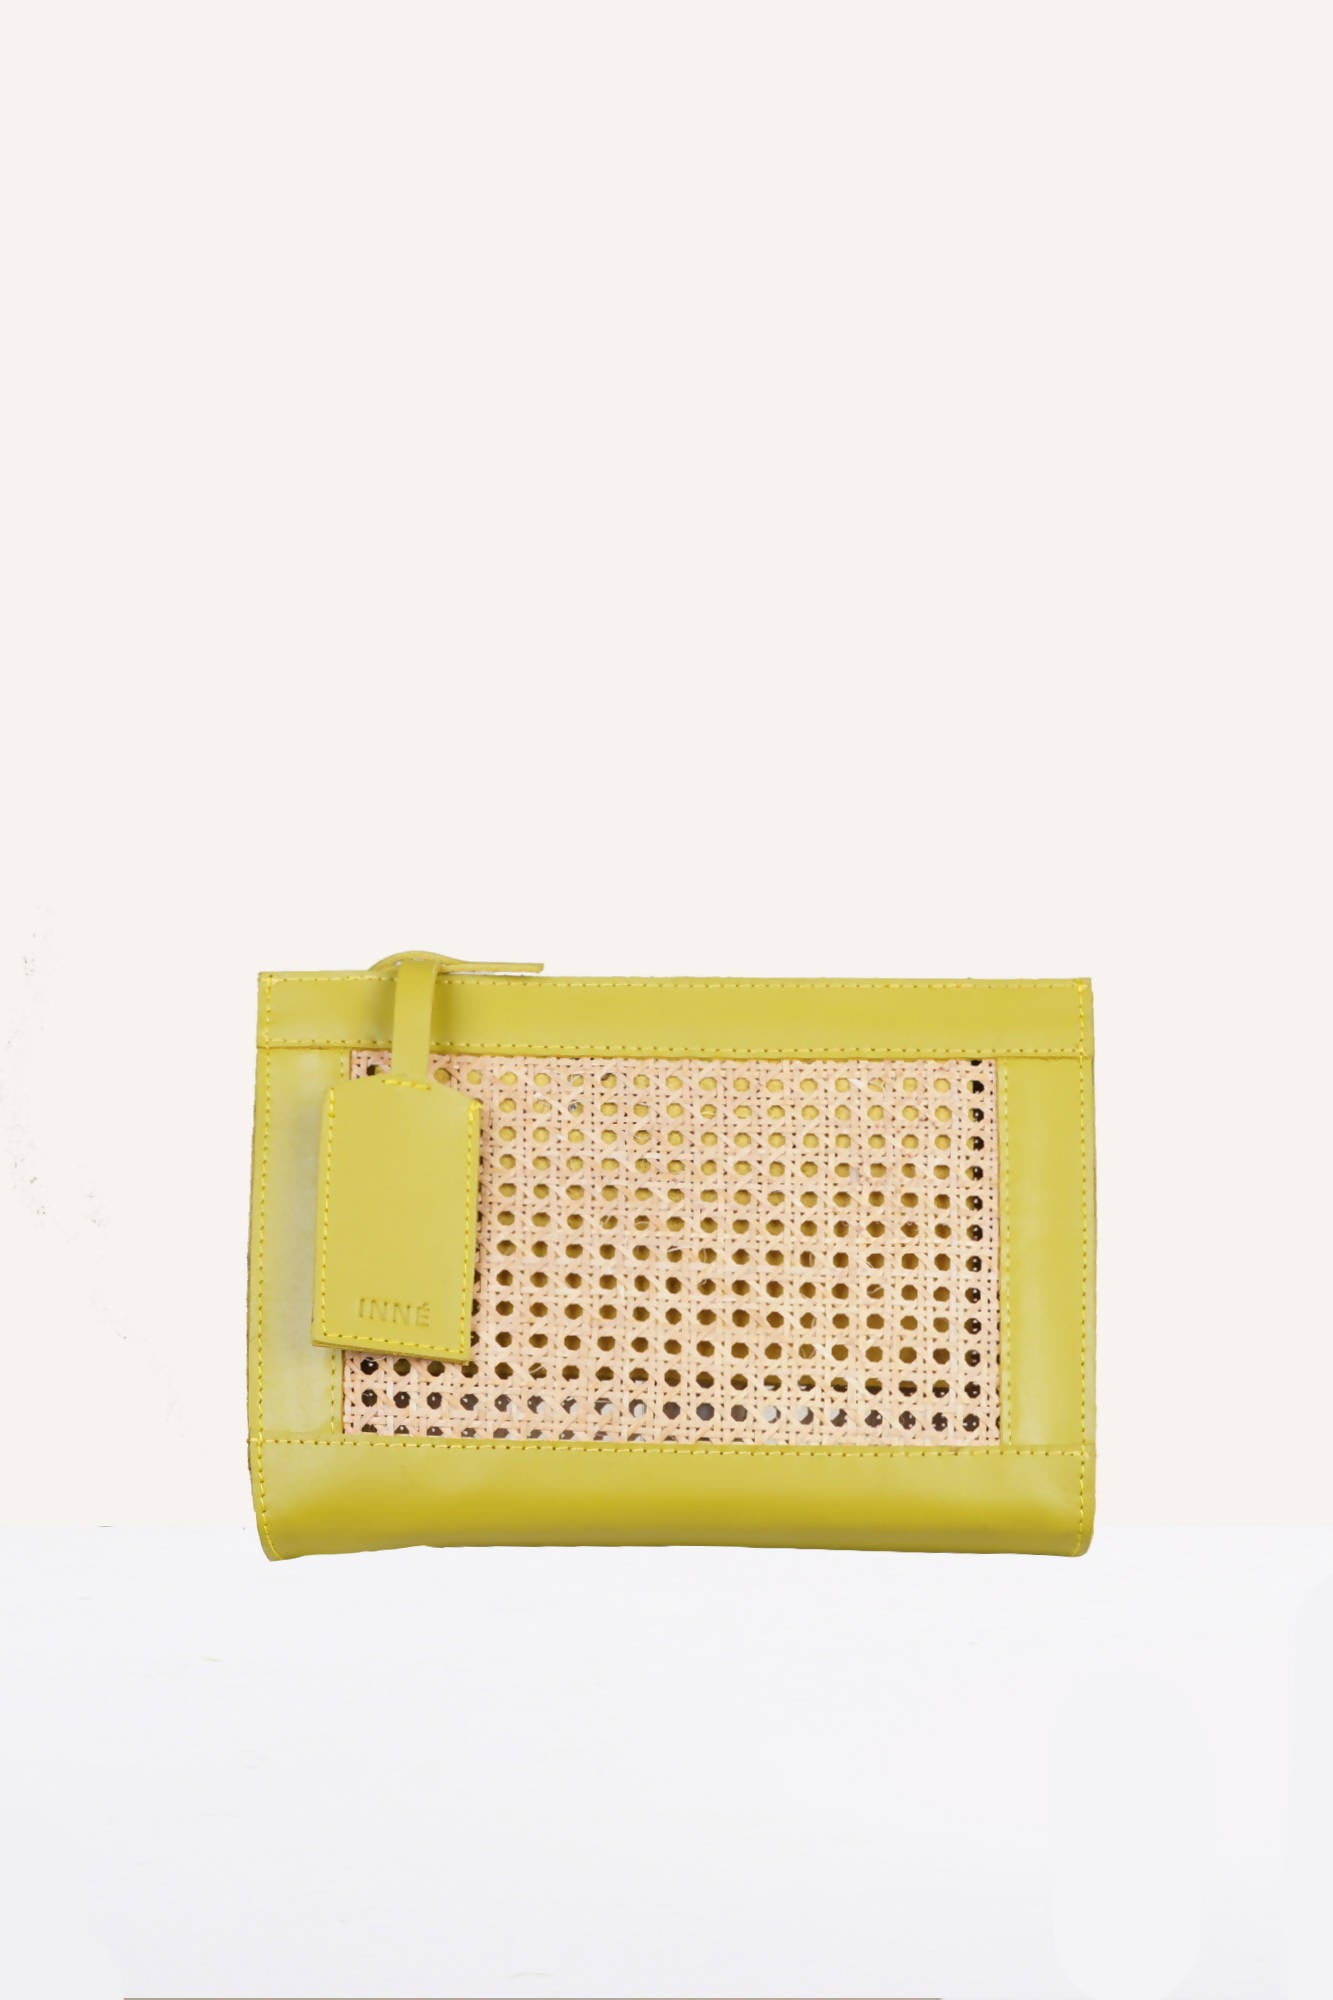 Sia Clutch Sling in Avocado